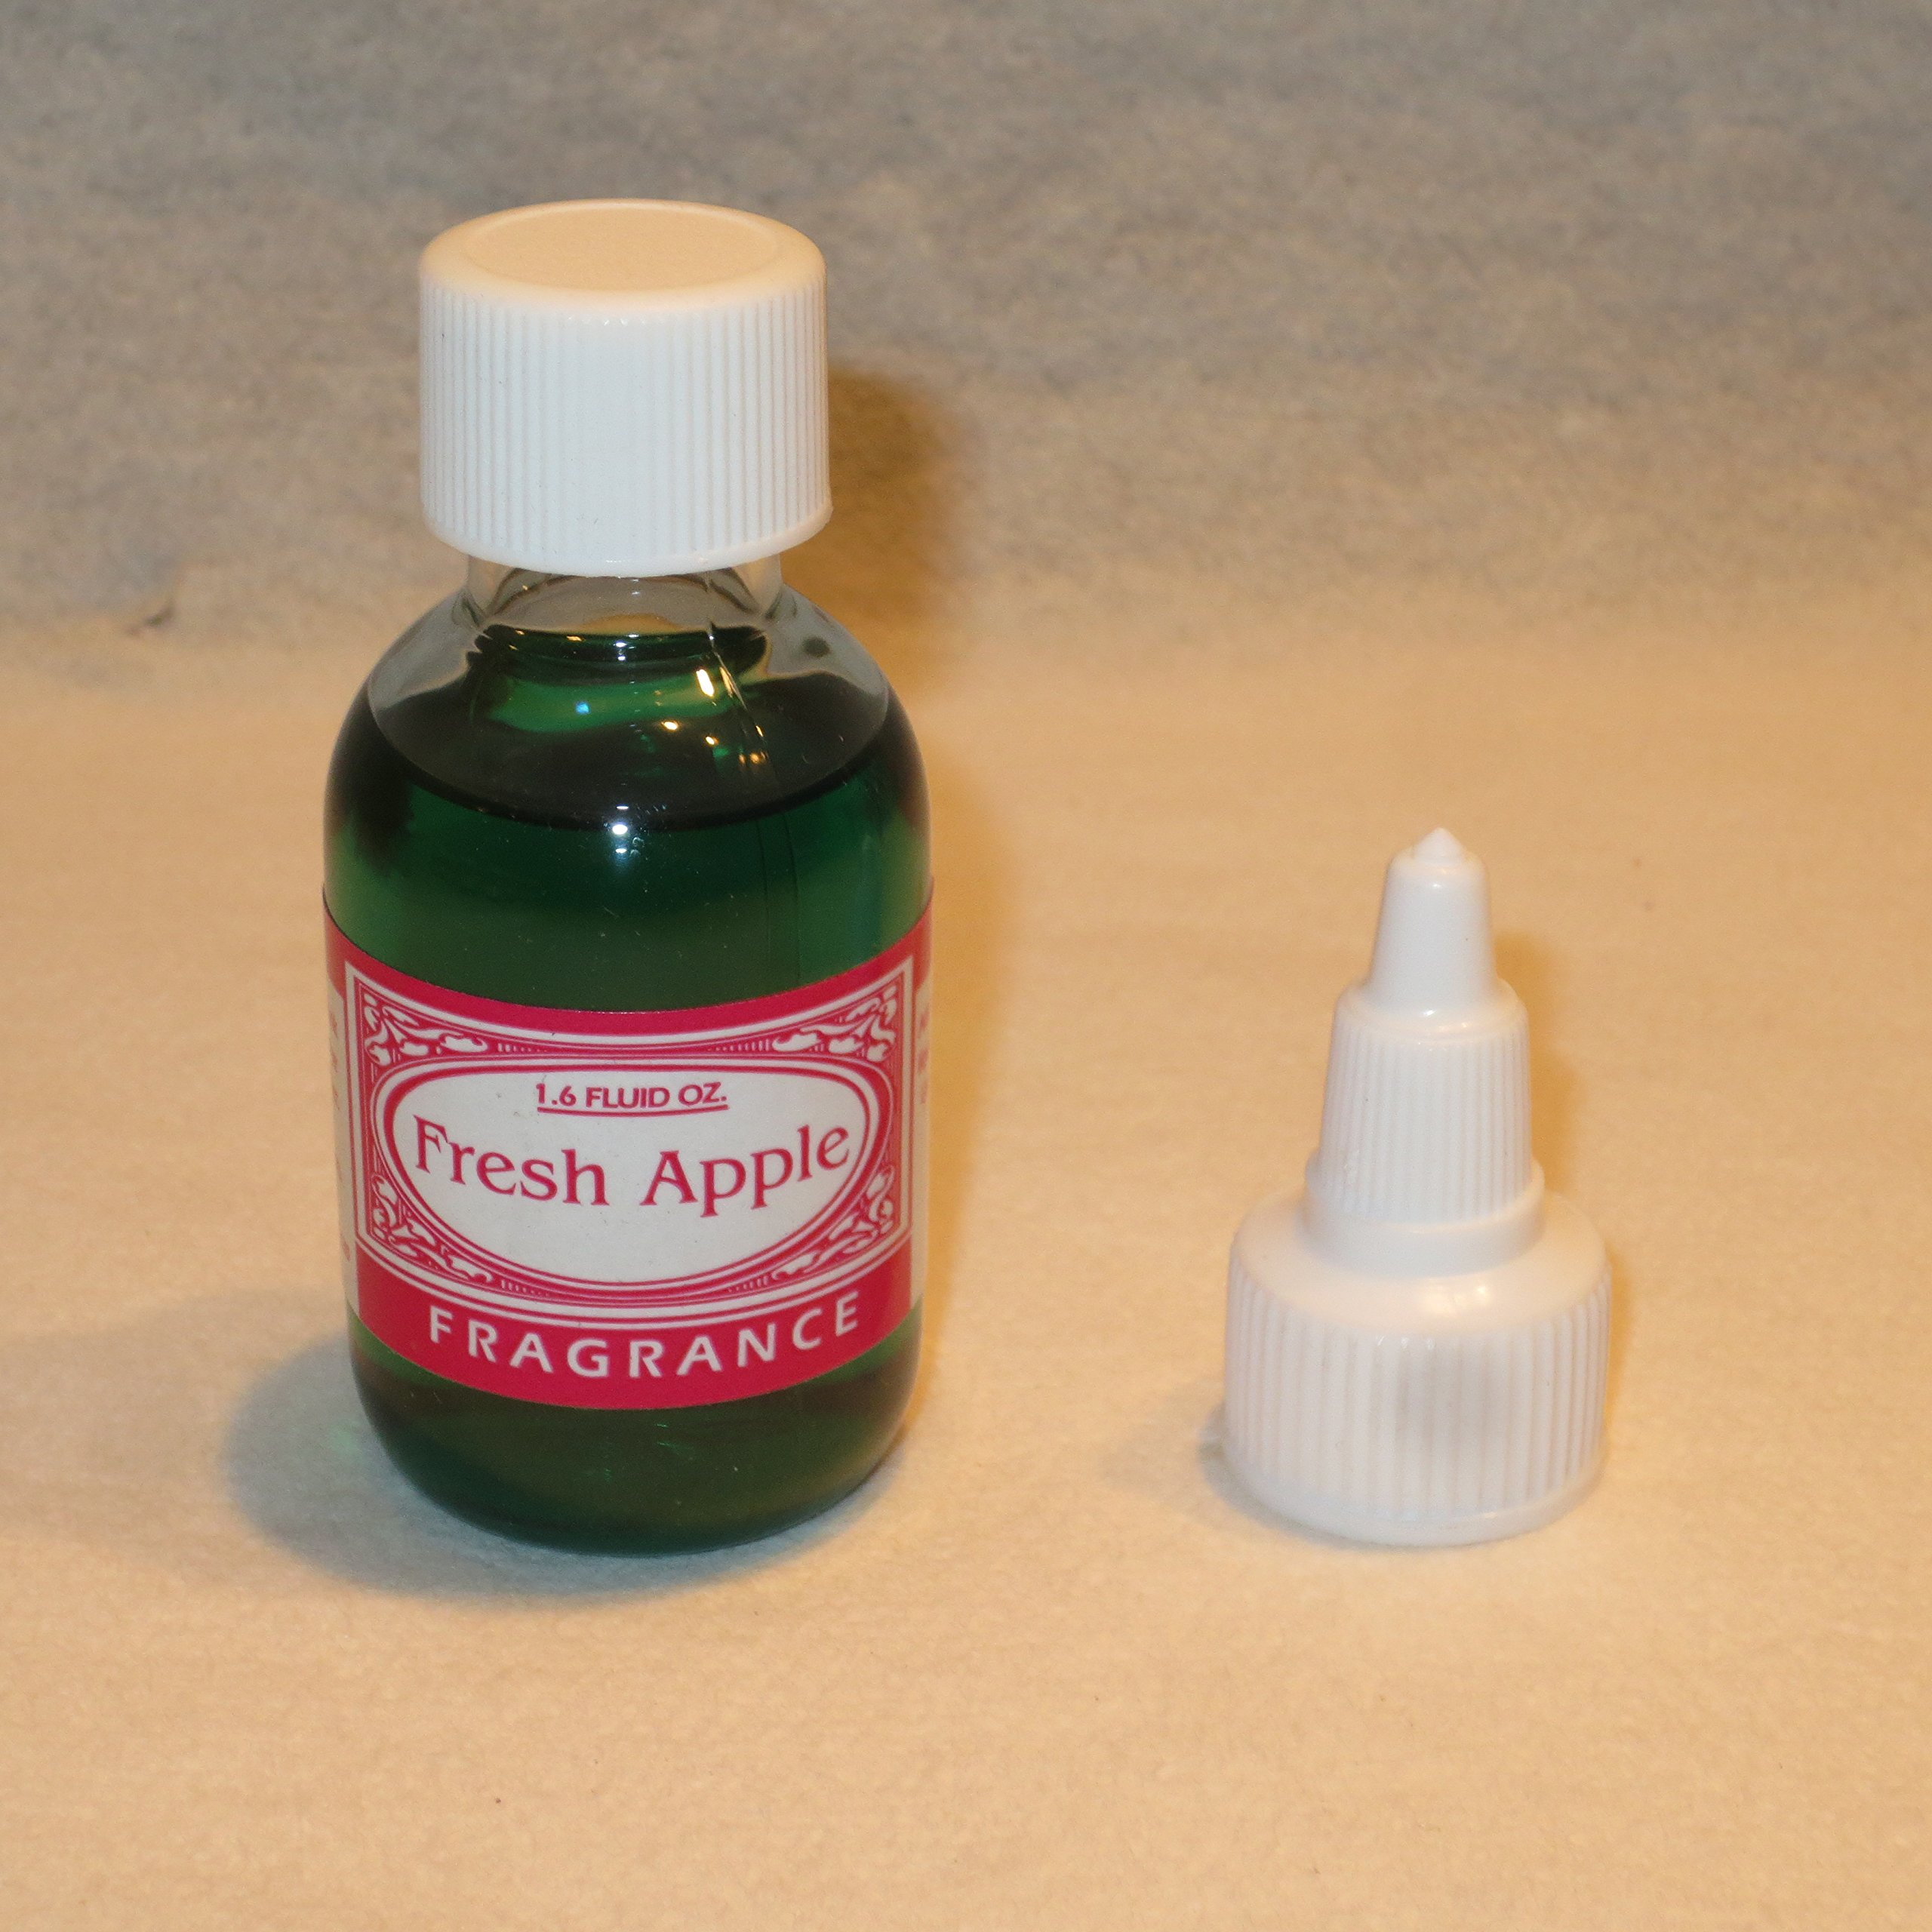 Generic Fresh Apple Liquid Fragrence For Vacuum Cleaner Bagless Filter or Bag 1.6 oz Bottle Oil Base Scent